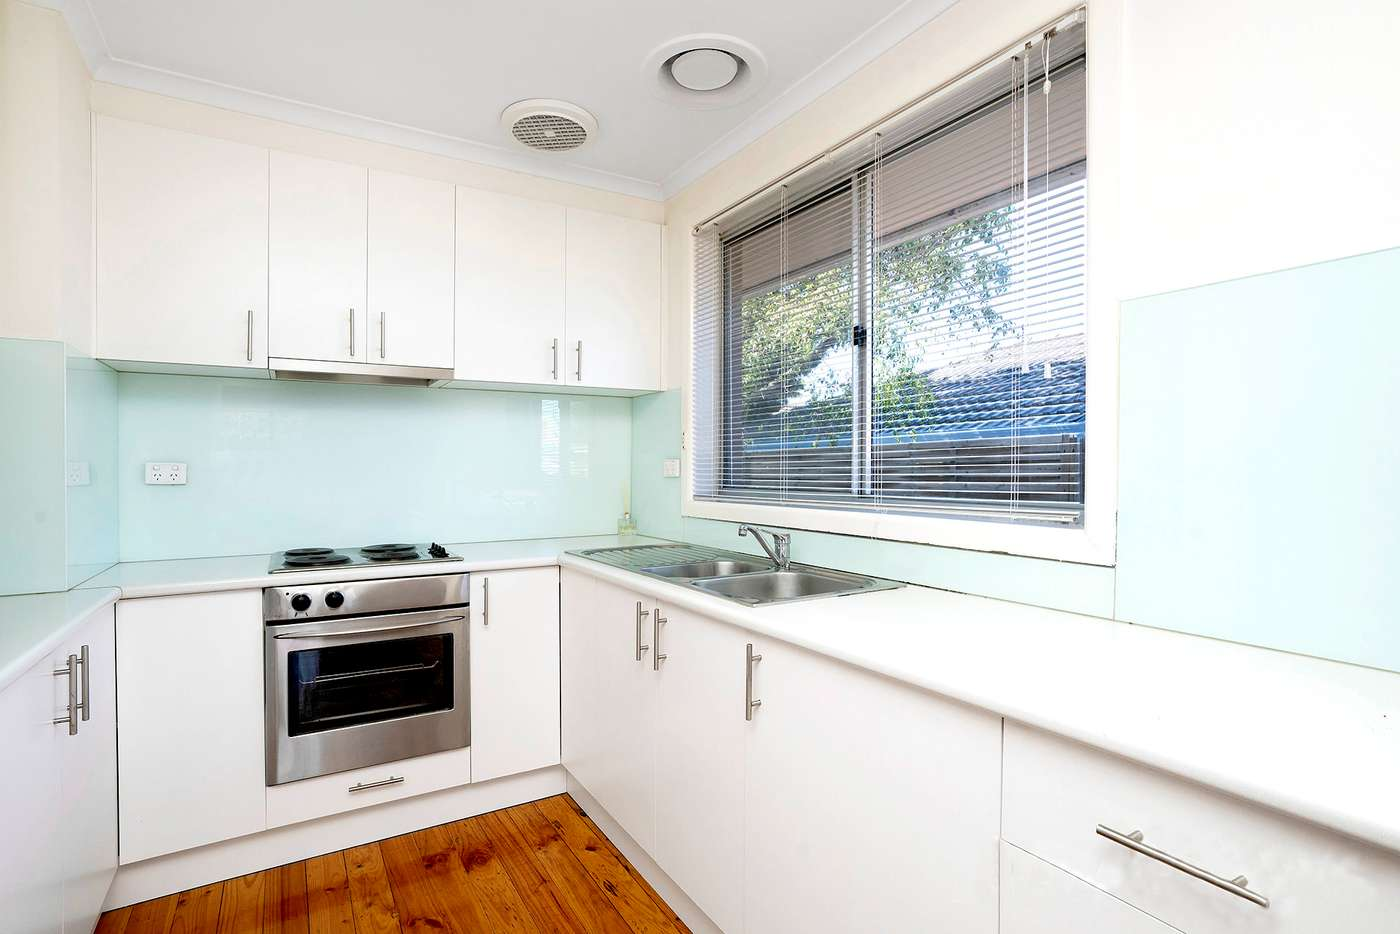 Sixth view of Homely unit listing, 3/9 Delacombe Court, Cheltenham VIC 3192